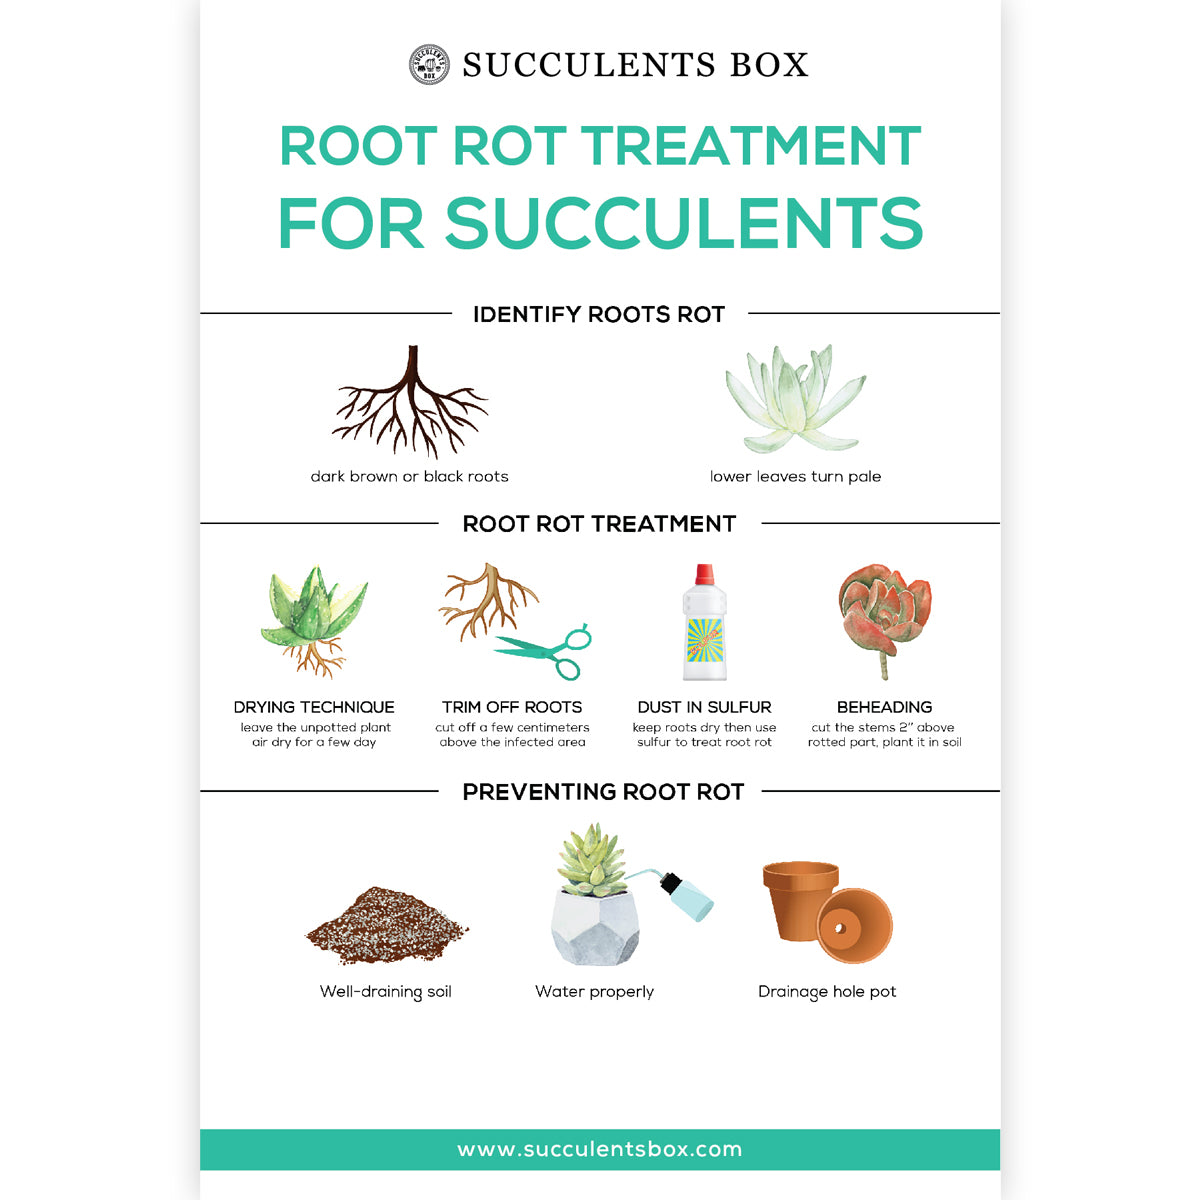 Root Rot Treatment for Succulents care card for sale, Succulent care instruction, Succulent gift ideas, gifts for succulent lovers